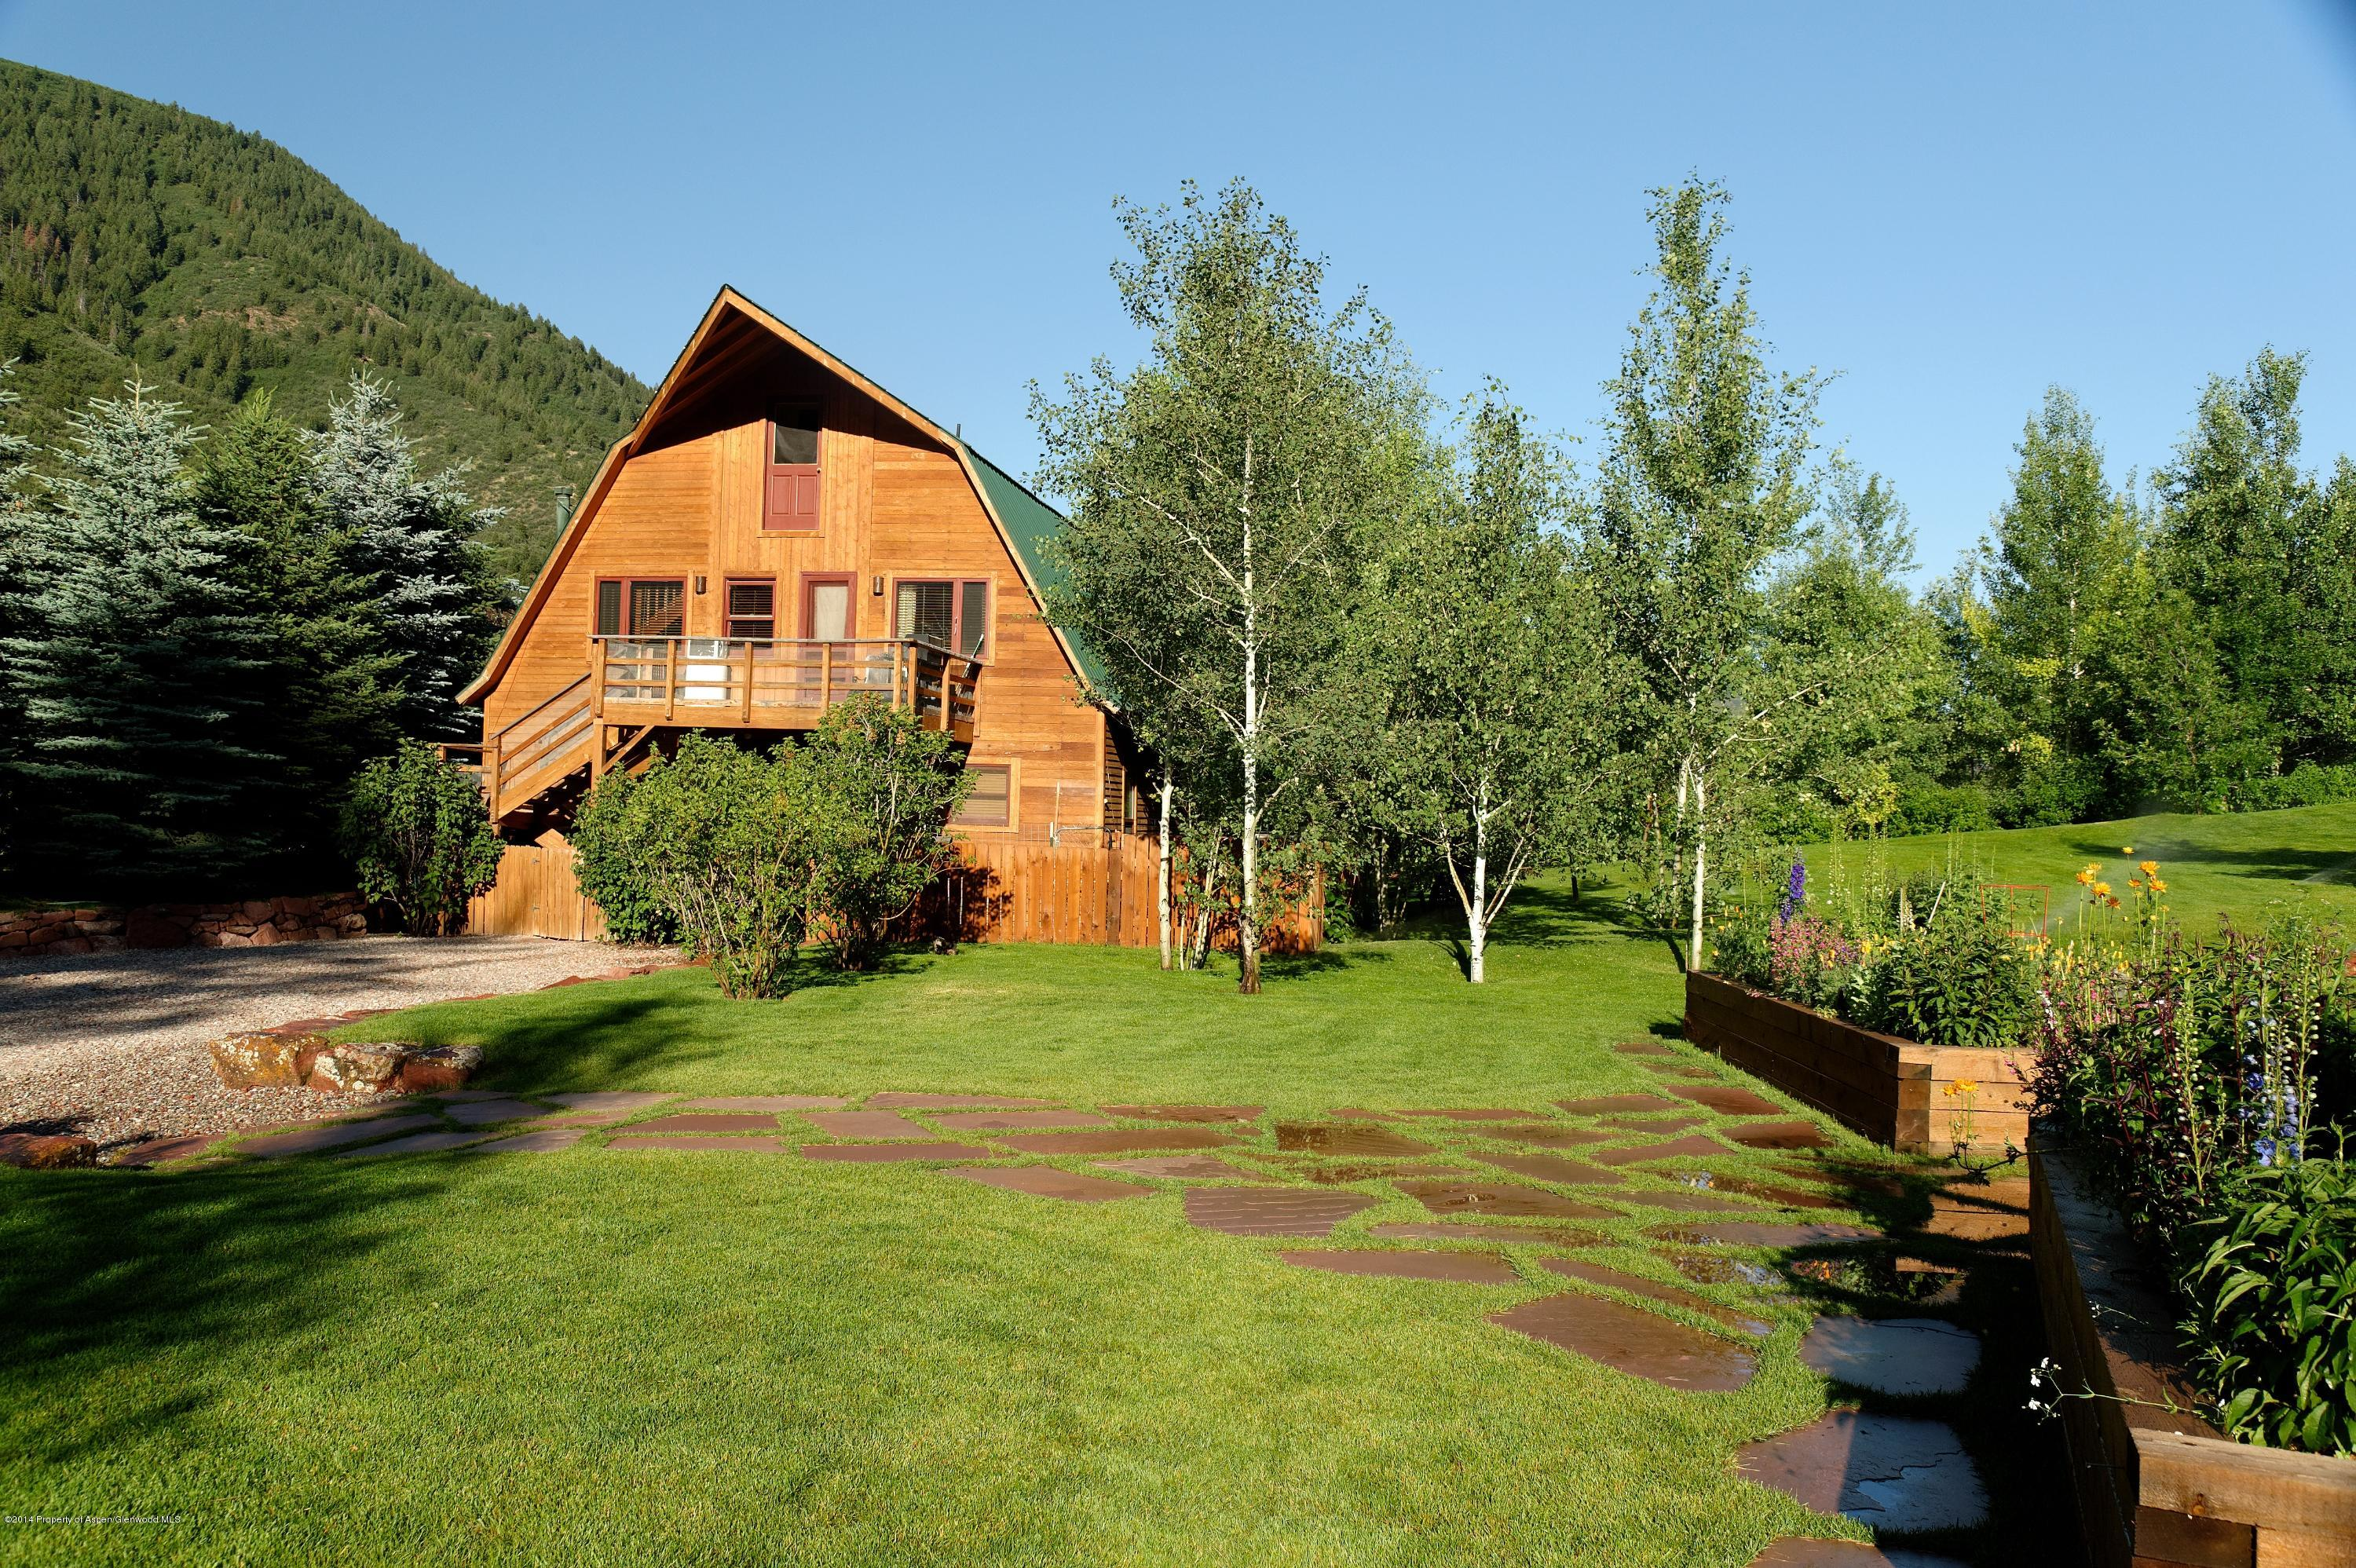 MLS# 135595 - 54 - 50 E River Ranch Road, Snowmass, CO 81654